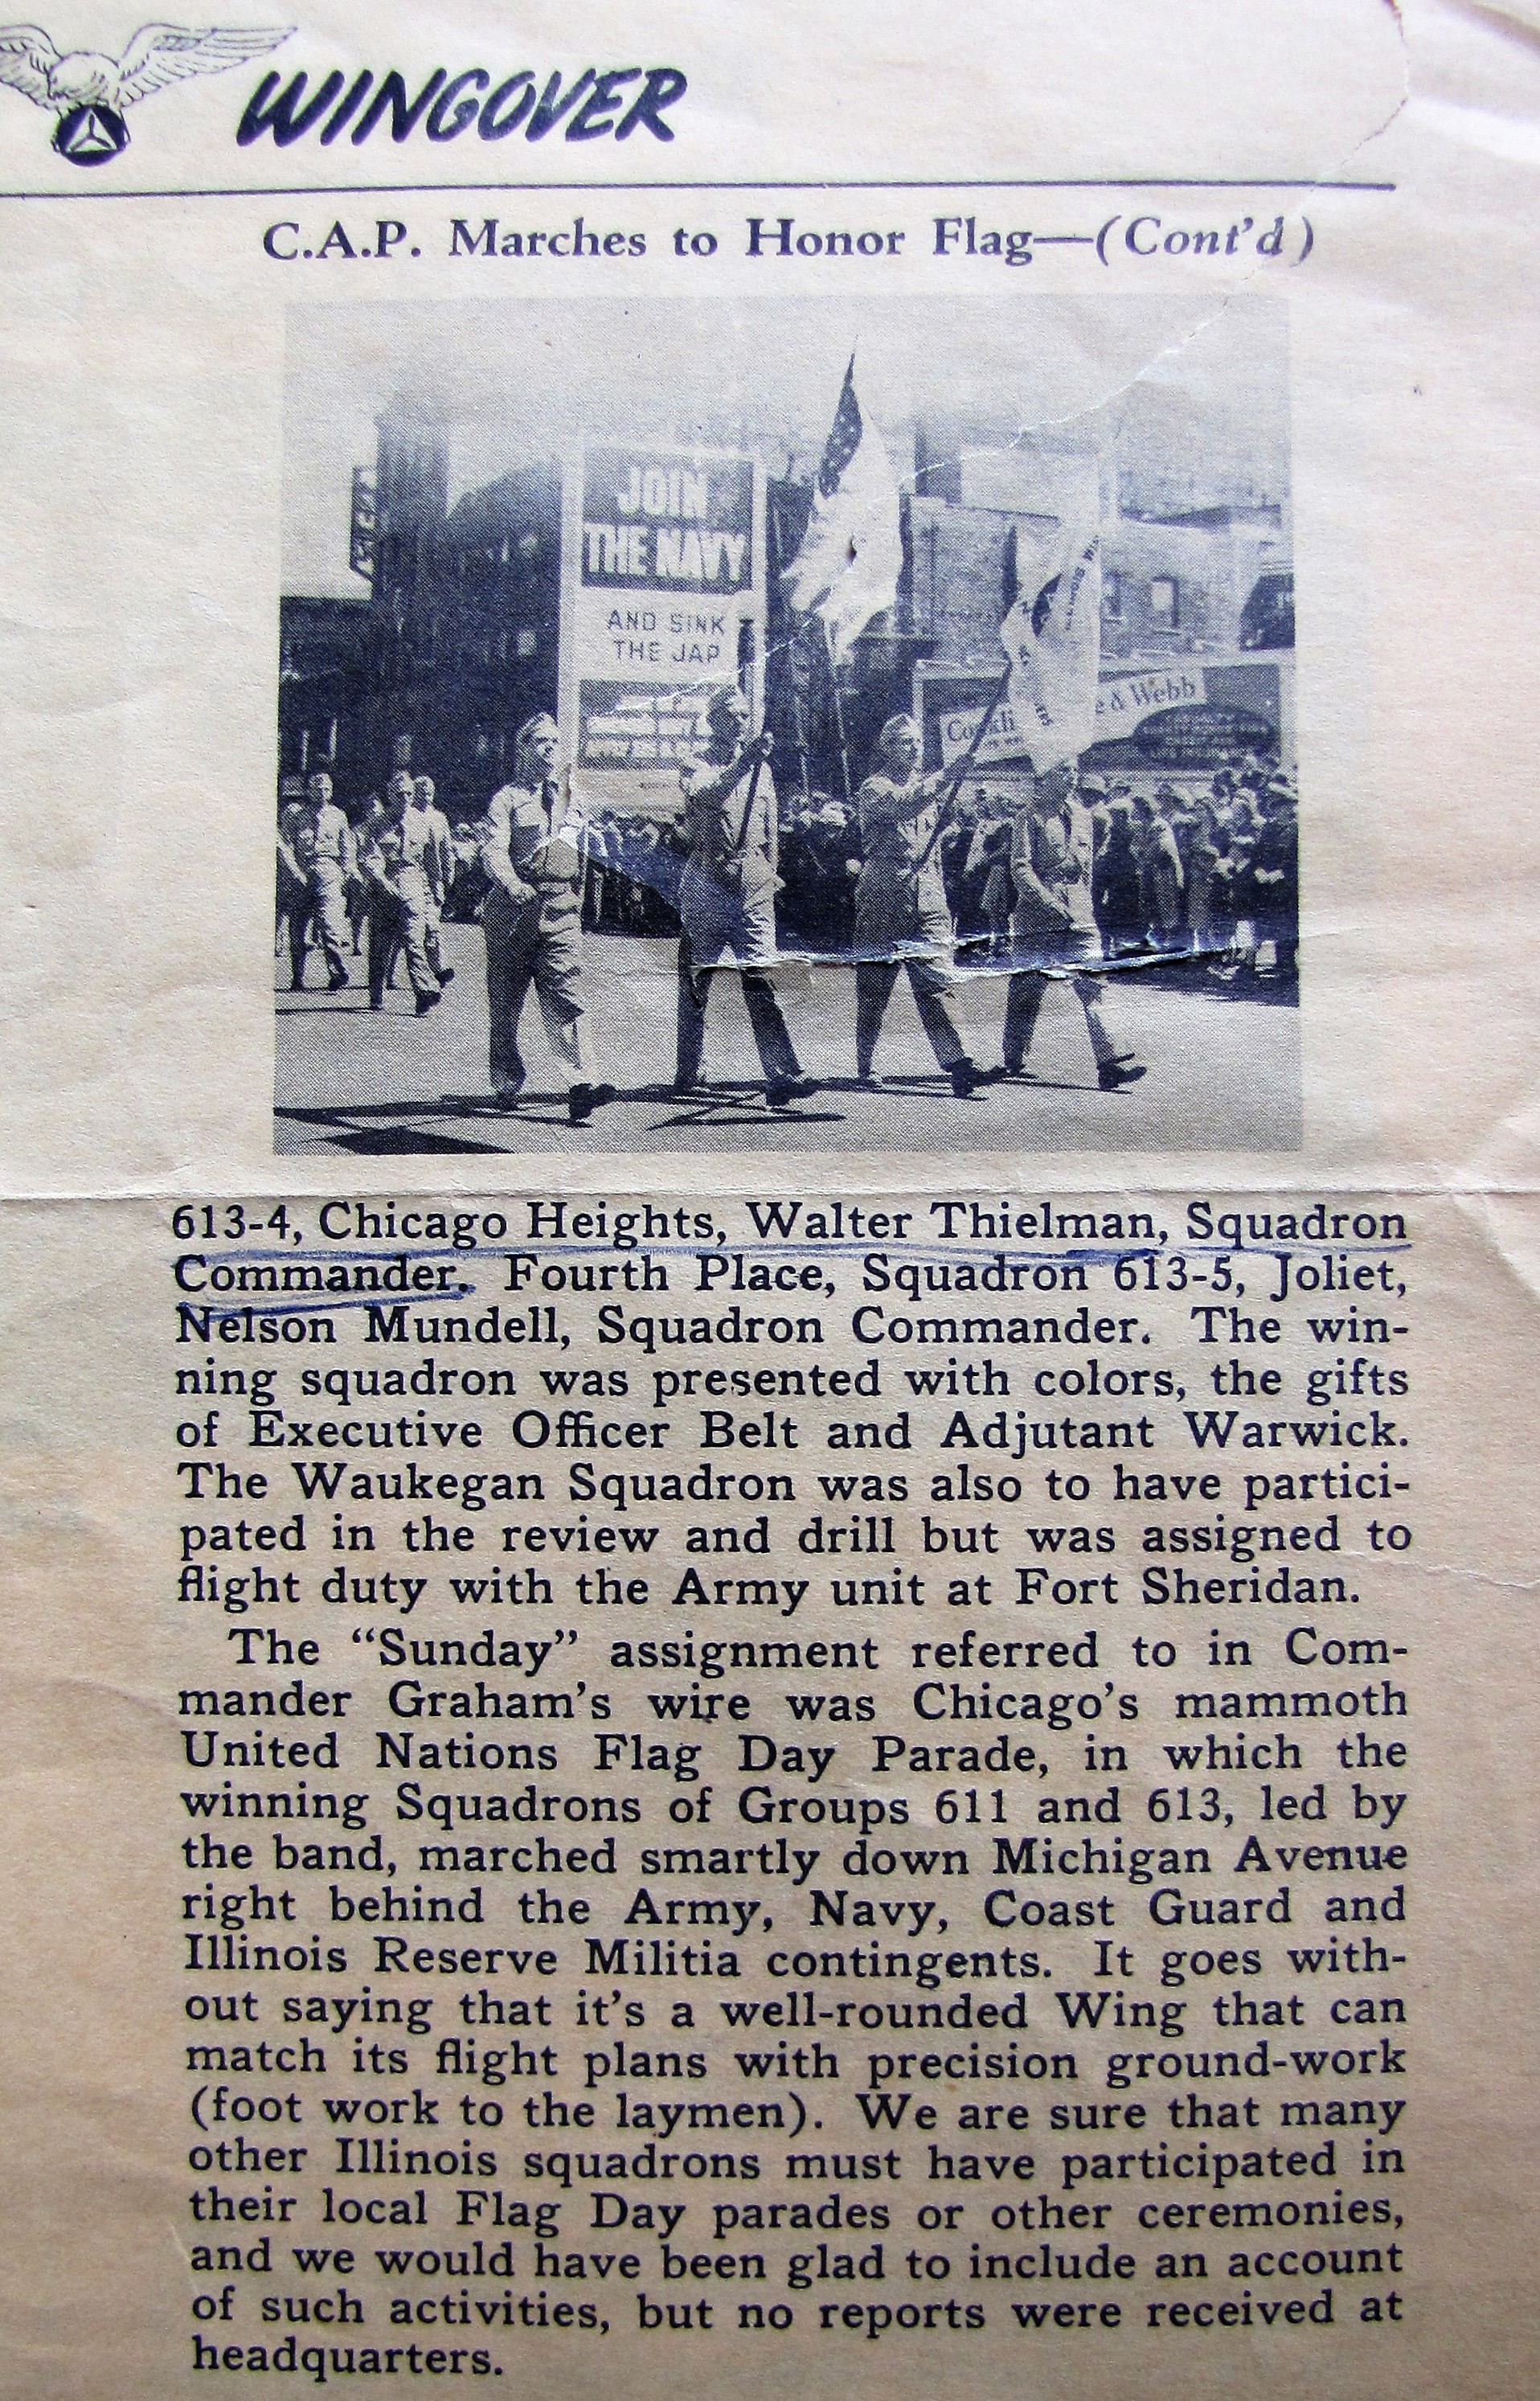 1942-7 C.A.P. Marches to Honor Flag